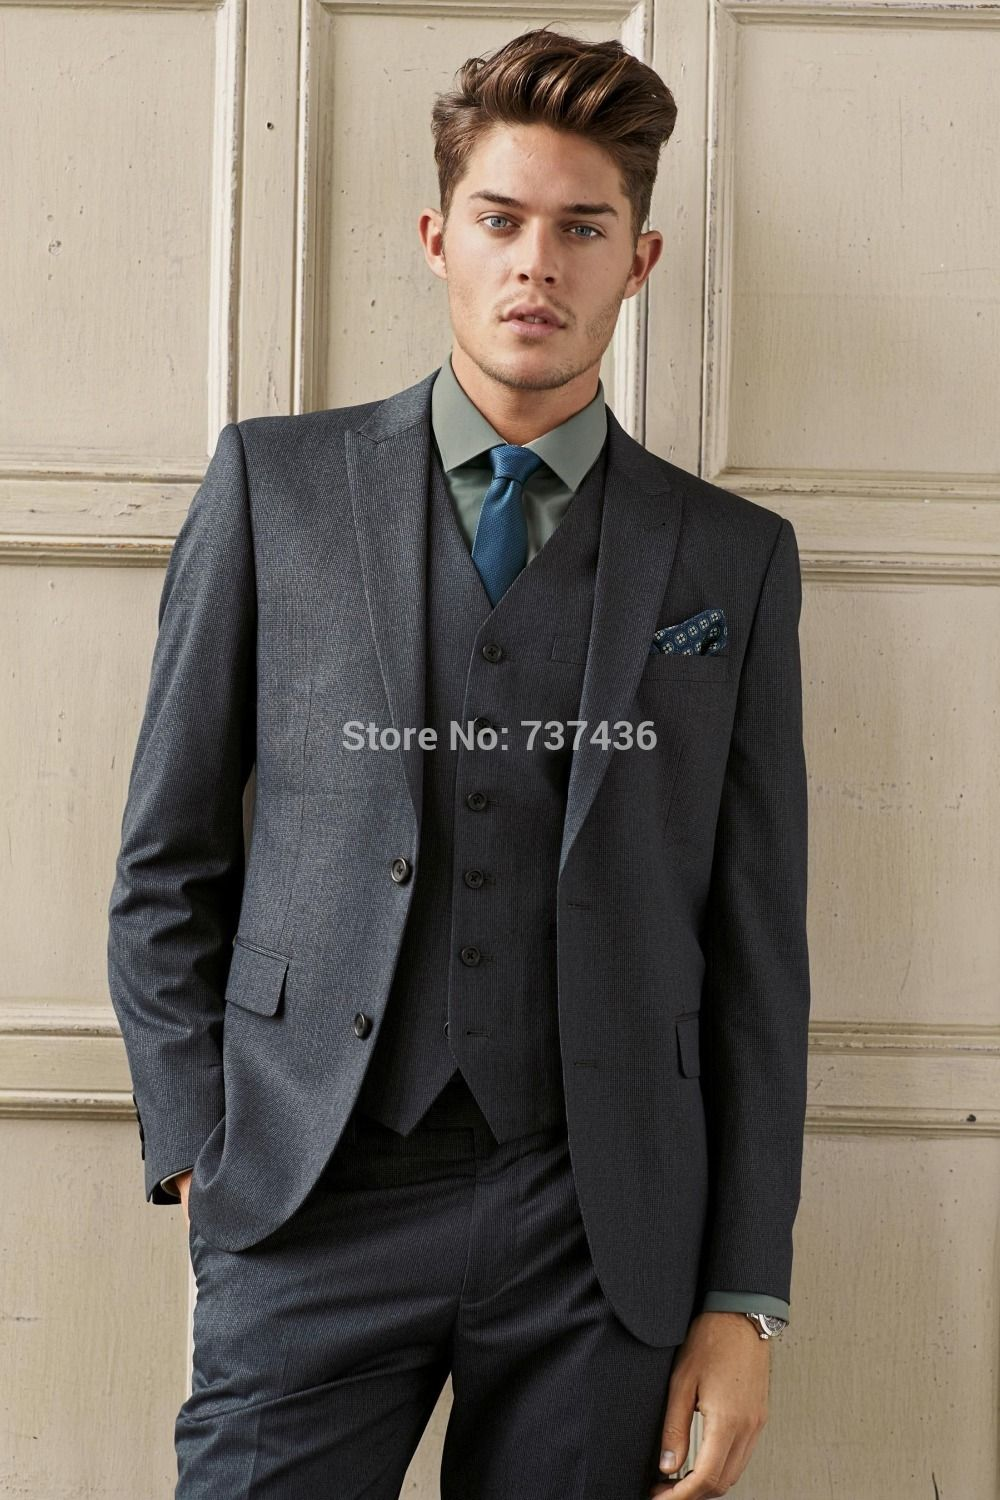 New Arrival Custom Made Men\'s Slim Business/Wedding Suits 2015 ...